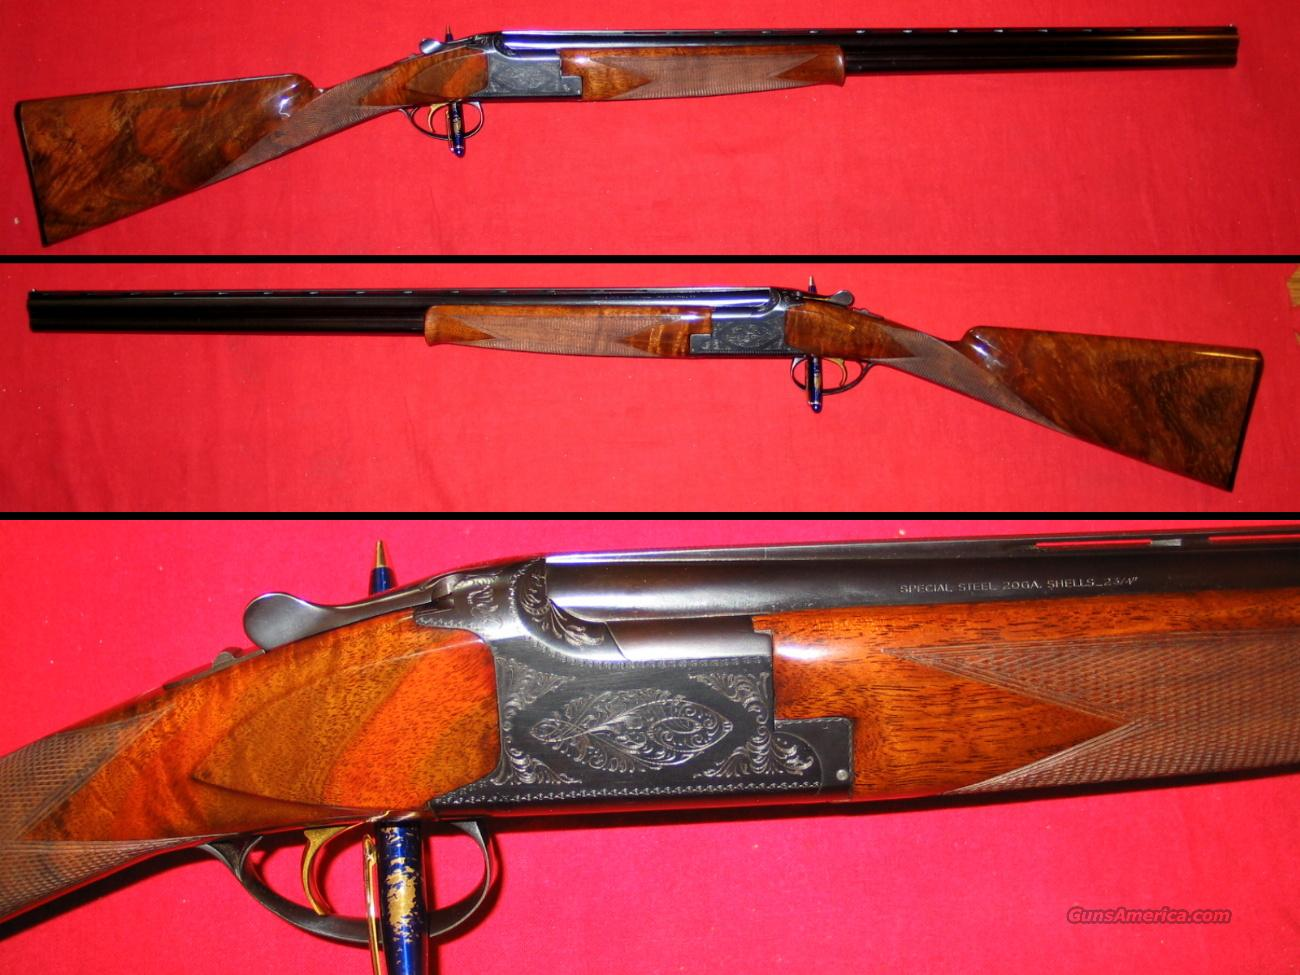 Superposed Superlight 20ga - SIGNED  Guns > Shotguns > Browning Shotguns > Over Unders > Belgian Manufacture